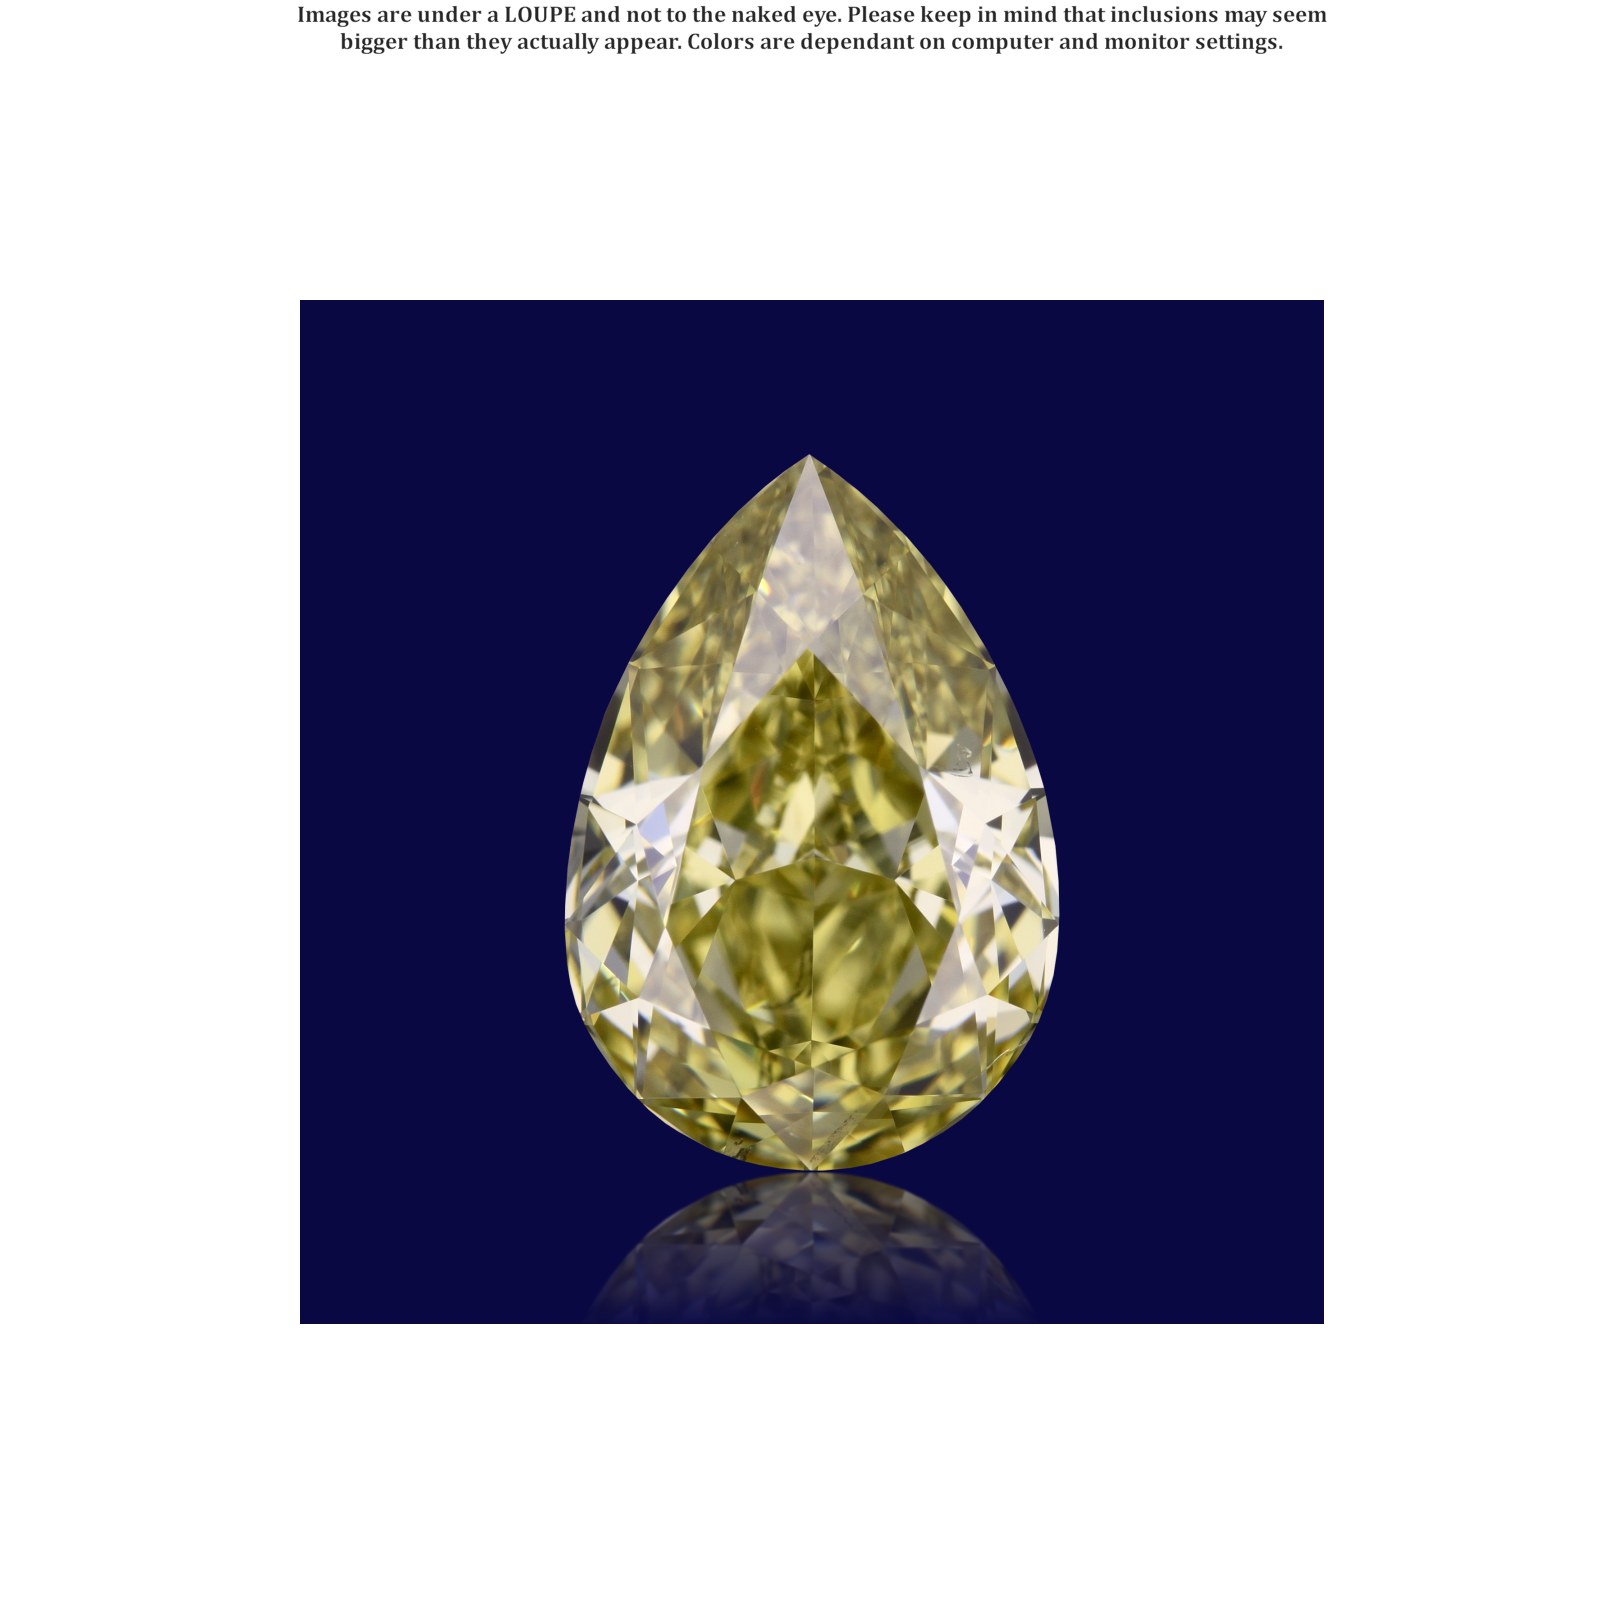 Arthur's Jewelry - Diamond Image - .00733